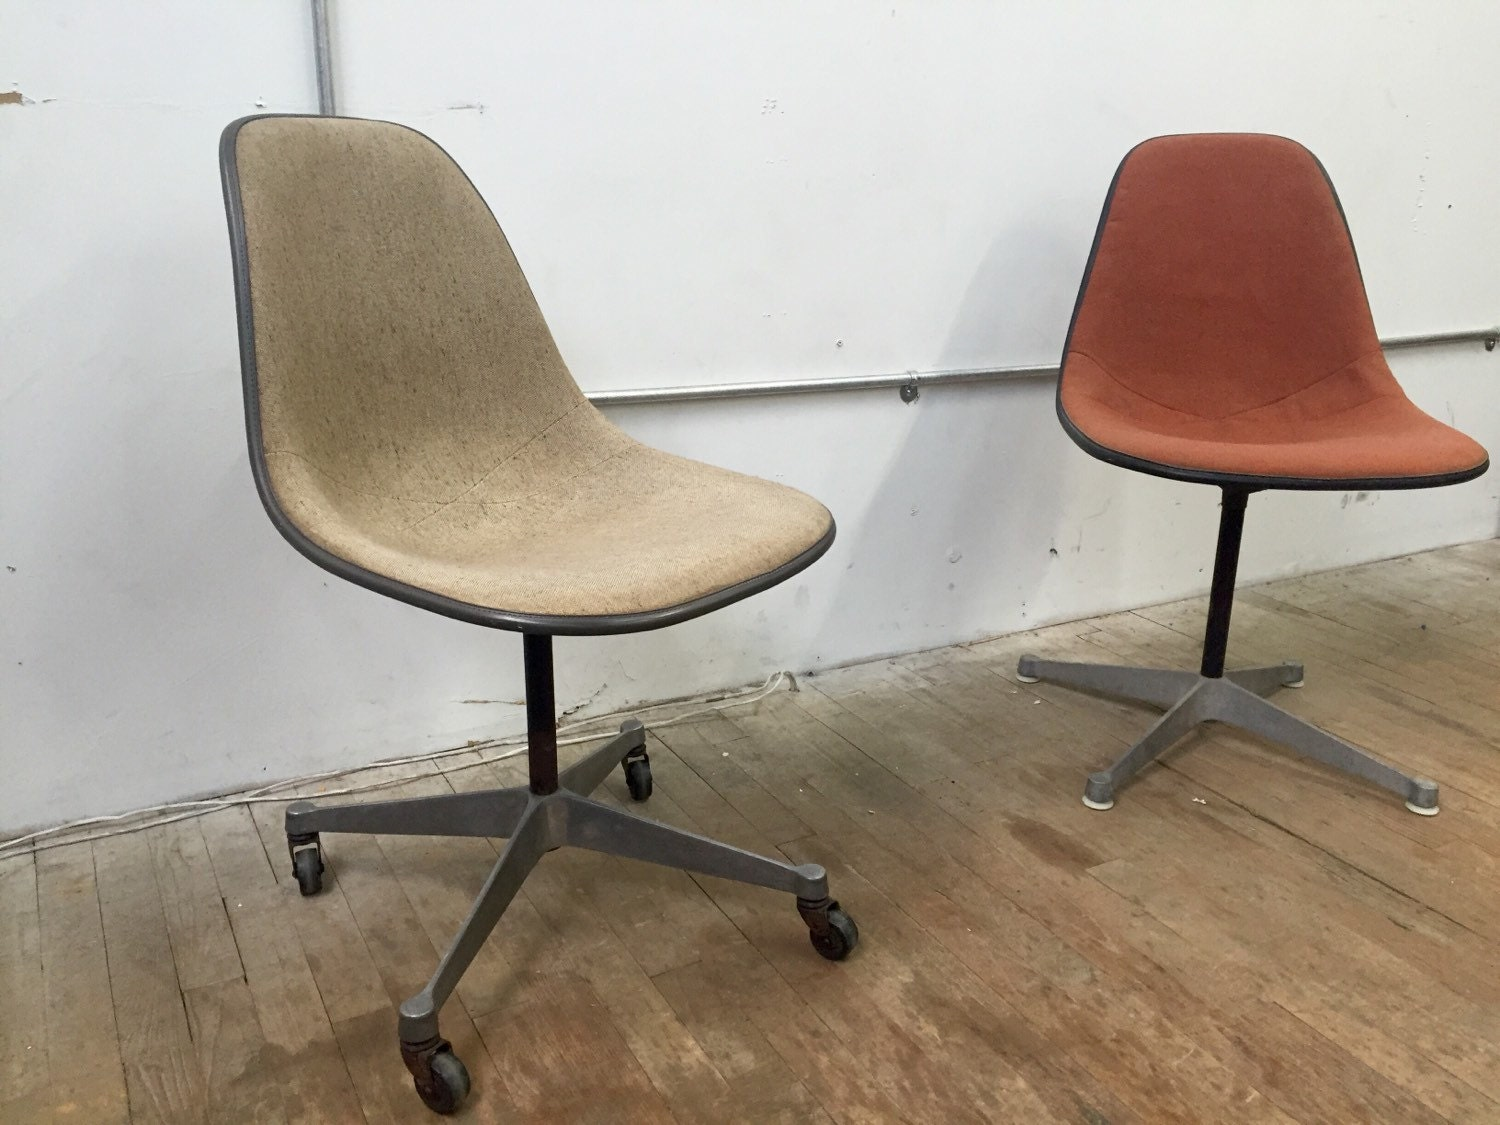 Herman Miller Eames Fiberglass Side Shell Chairs With Girard